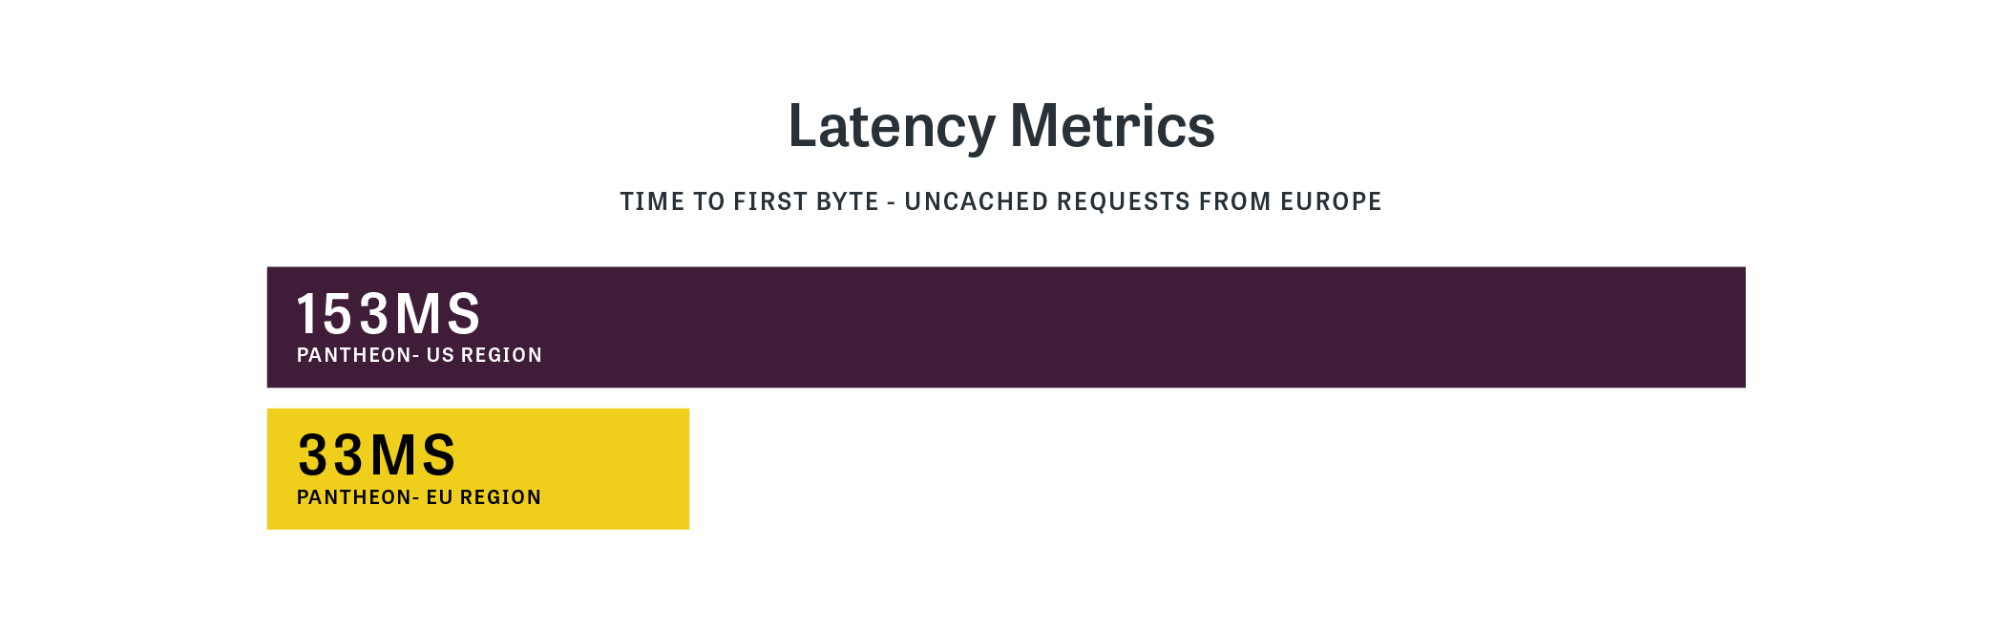 Graphic showing reduced latency of 33 milliseconds for time to first byte